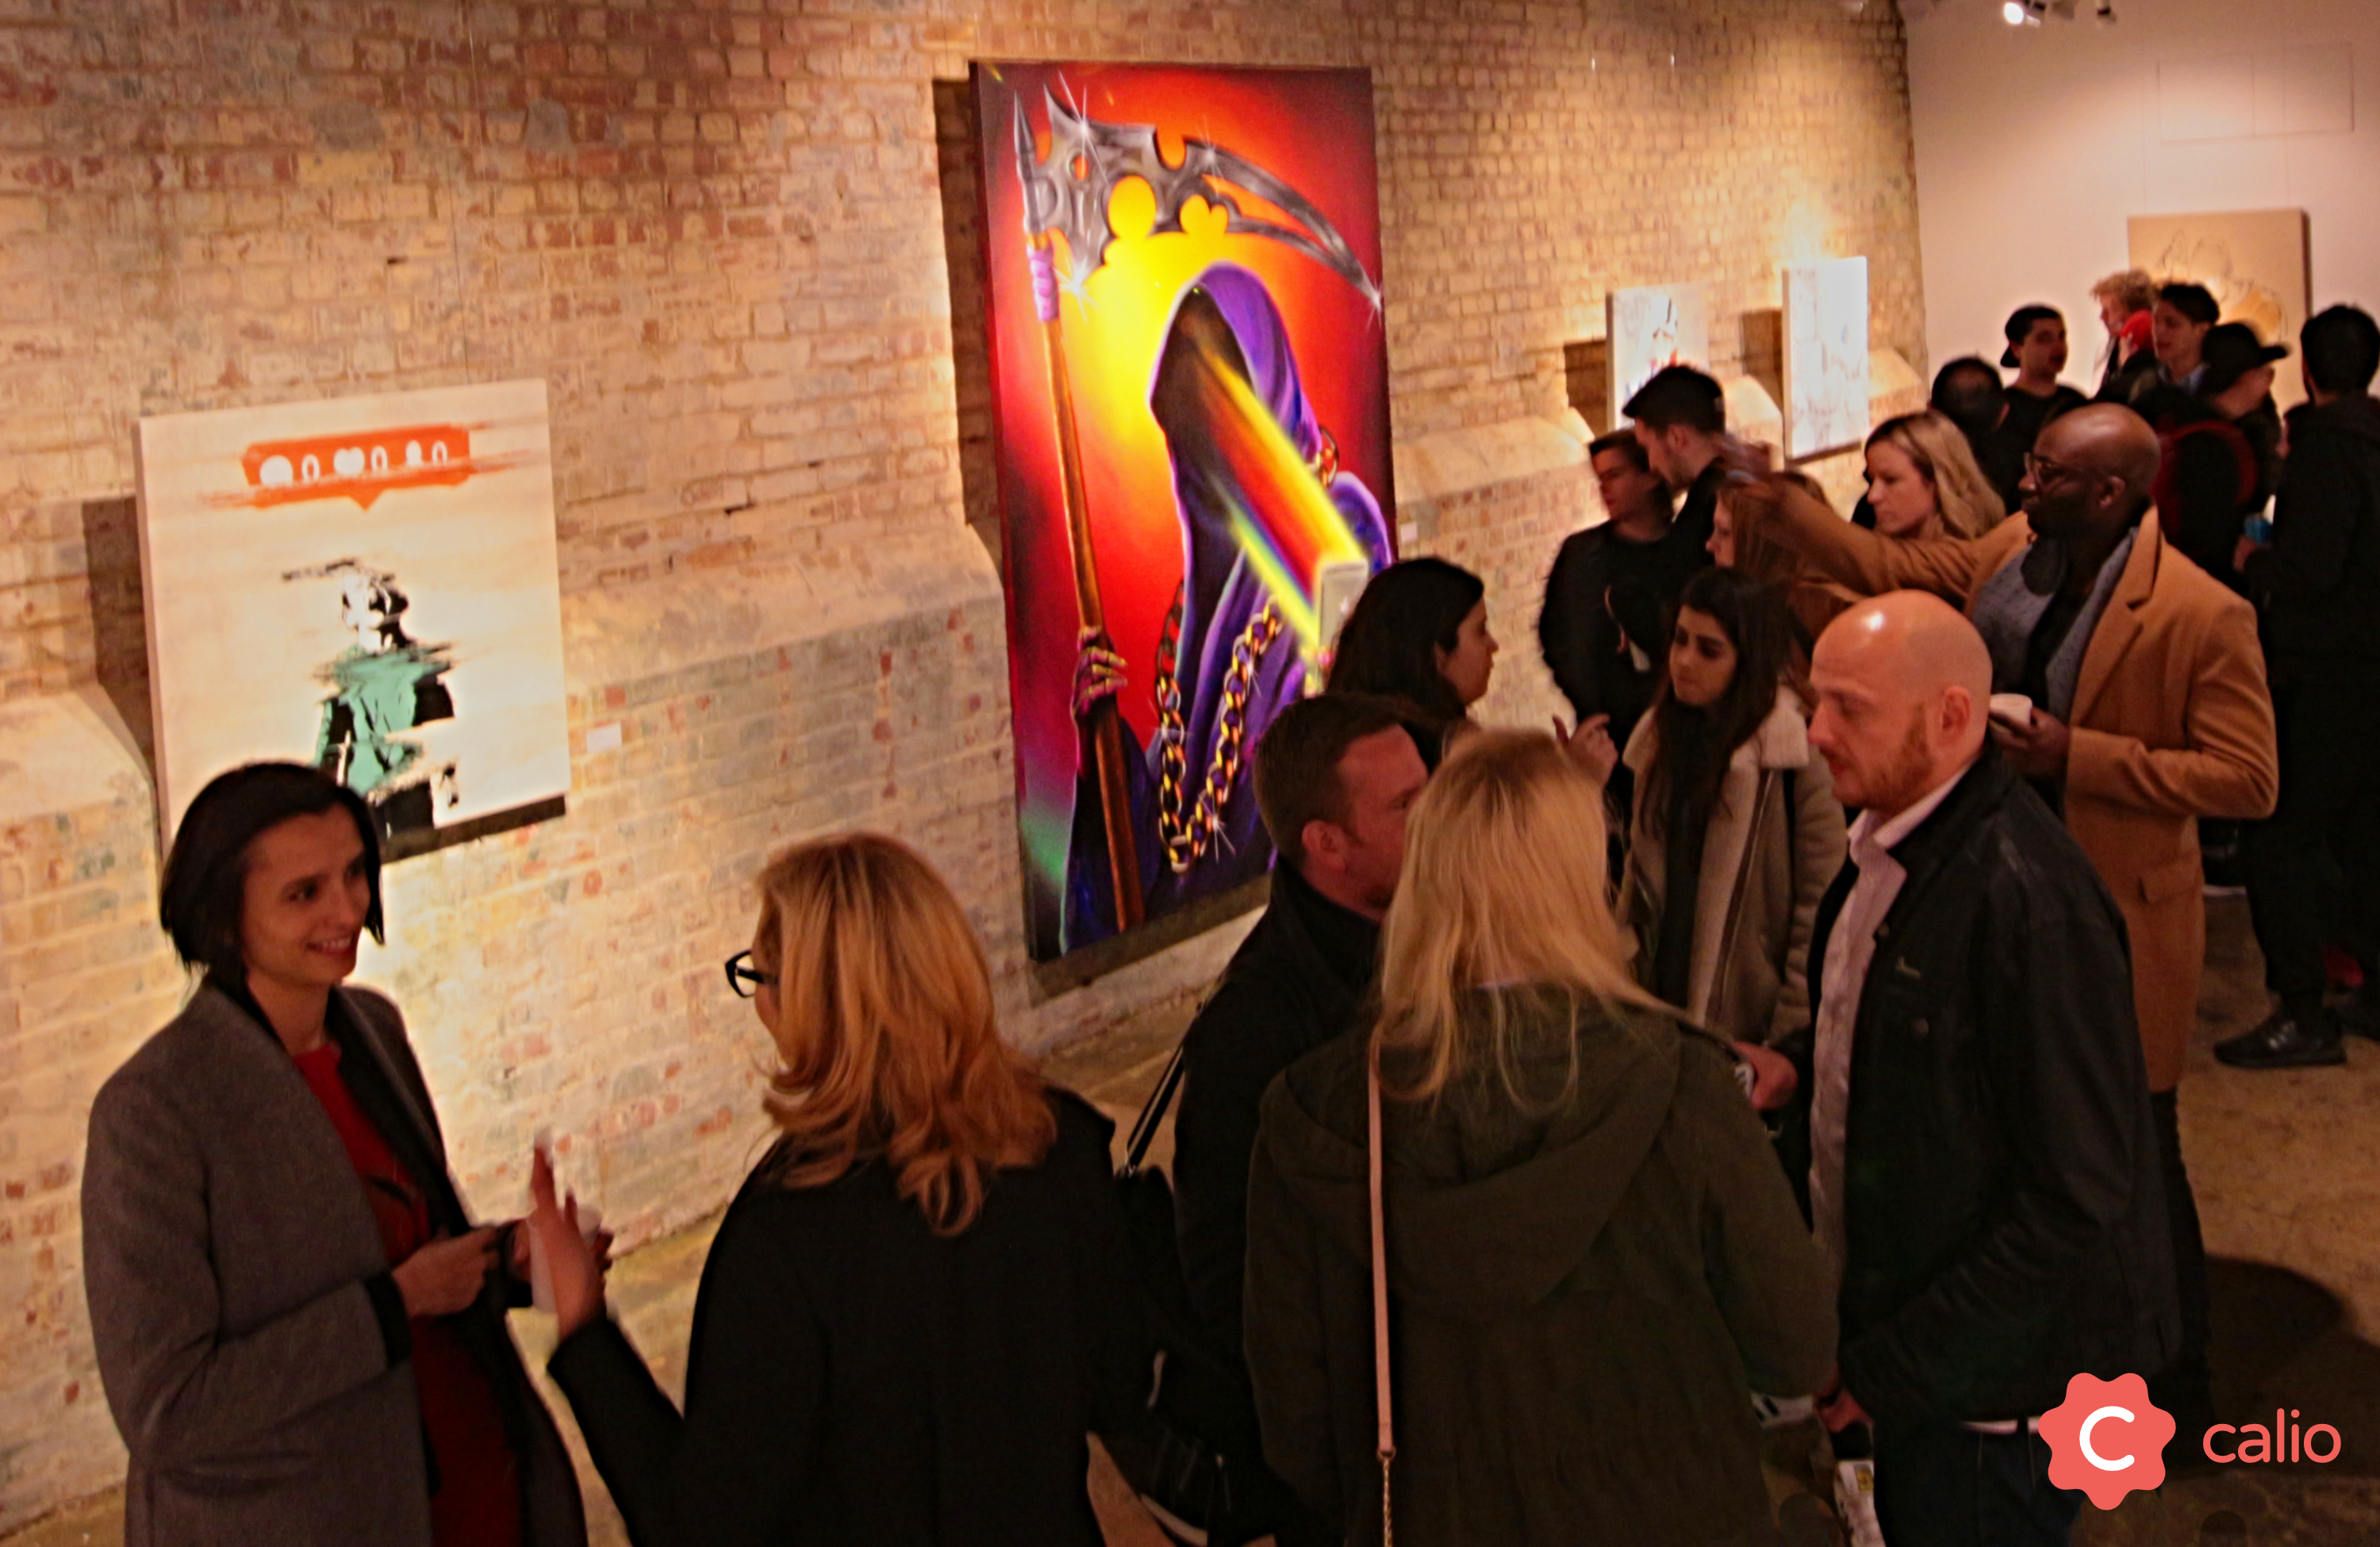 "Recap: ""The Social Paradox"" Group Exhibition @ London's Calio Artes & contextos Calio TheSocialParadox Crowd v3"